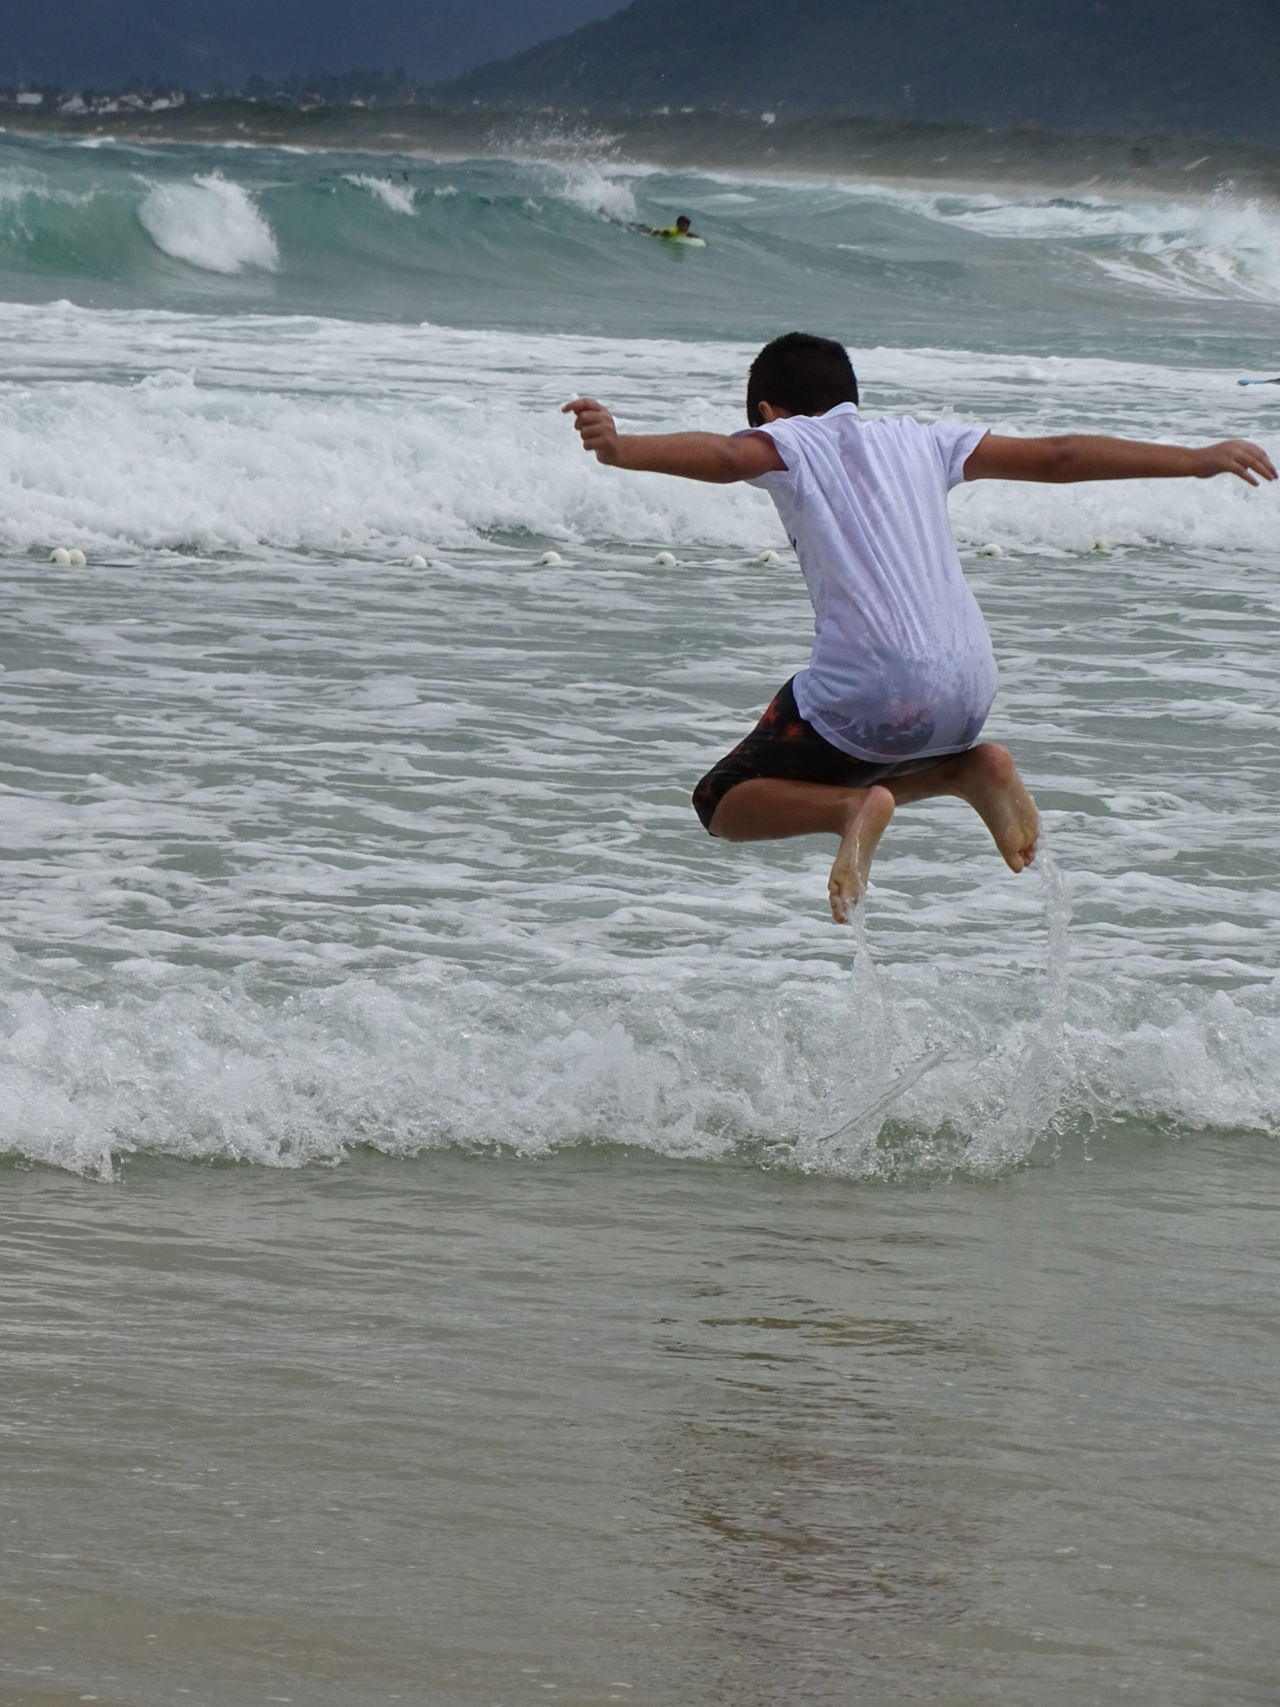 My son jumping on the beach in Florianópolis, Brazil 😎 Sea Freedom Wave Beach One Person Florianópolis Outdoors Rear View Healthy Lifestyle Enjoyment Jumping Wellbeing Lifestyles Motion Nature Full Length Water People Sand Boy Kid